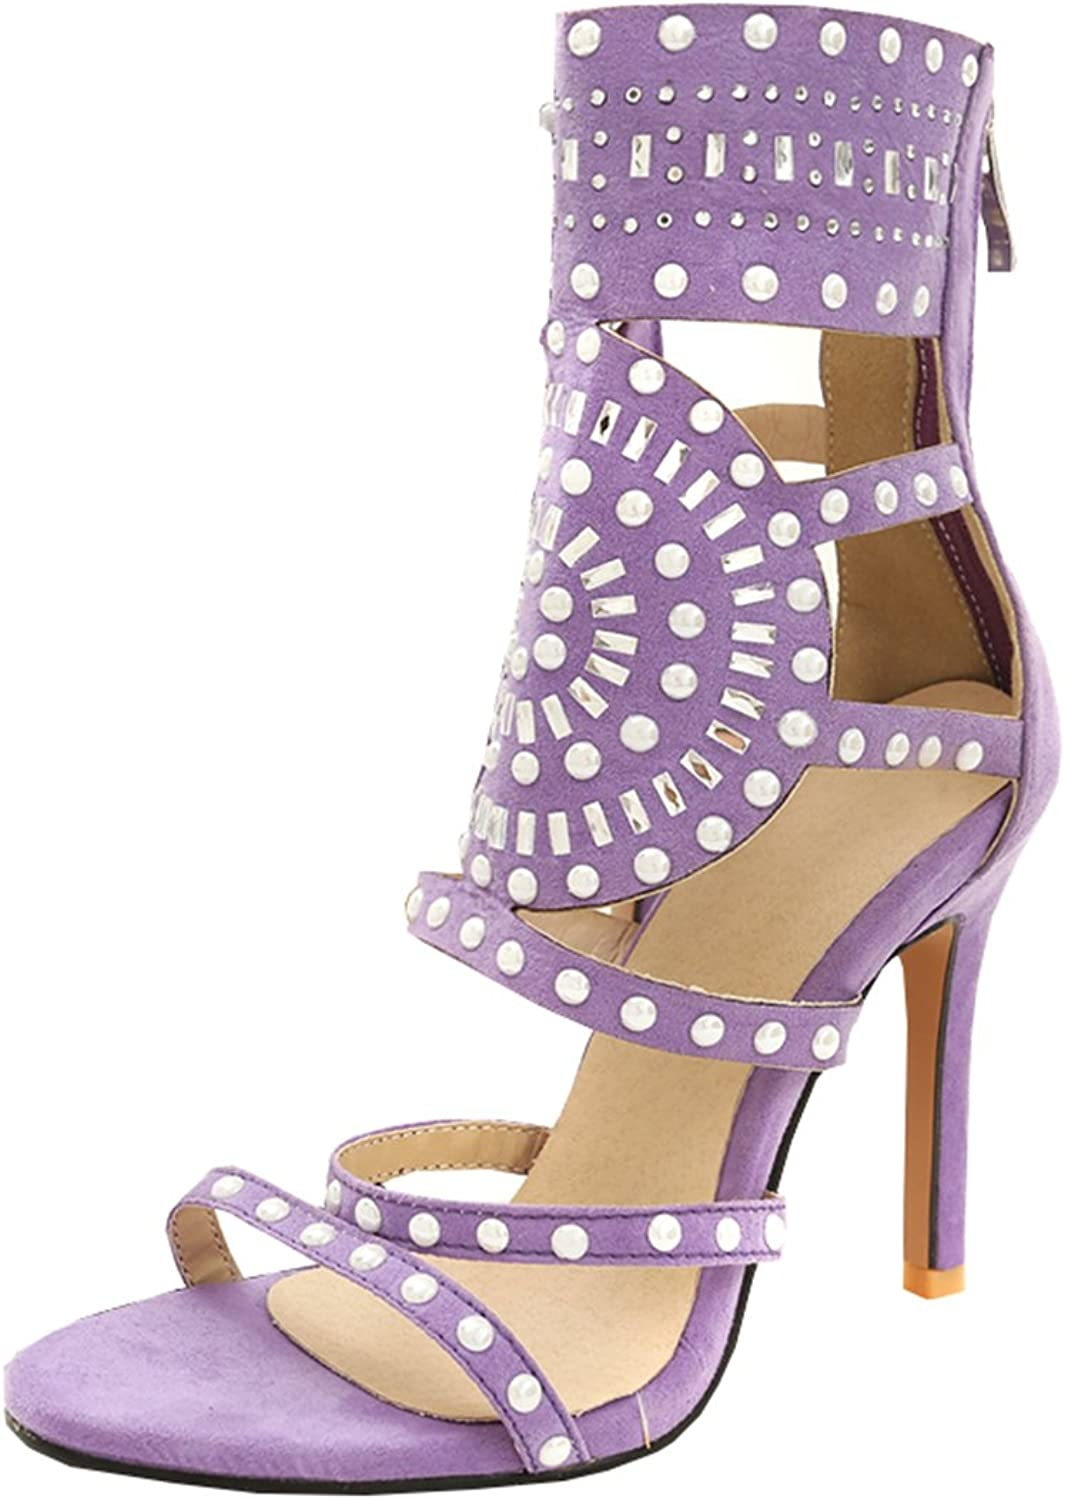 Artfaerie Women's Stiletto High Heels Summer Boots Open Toe Ankle Strap Sandals with Rhinestones